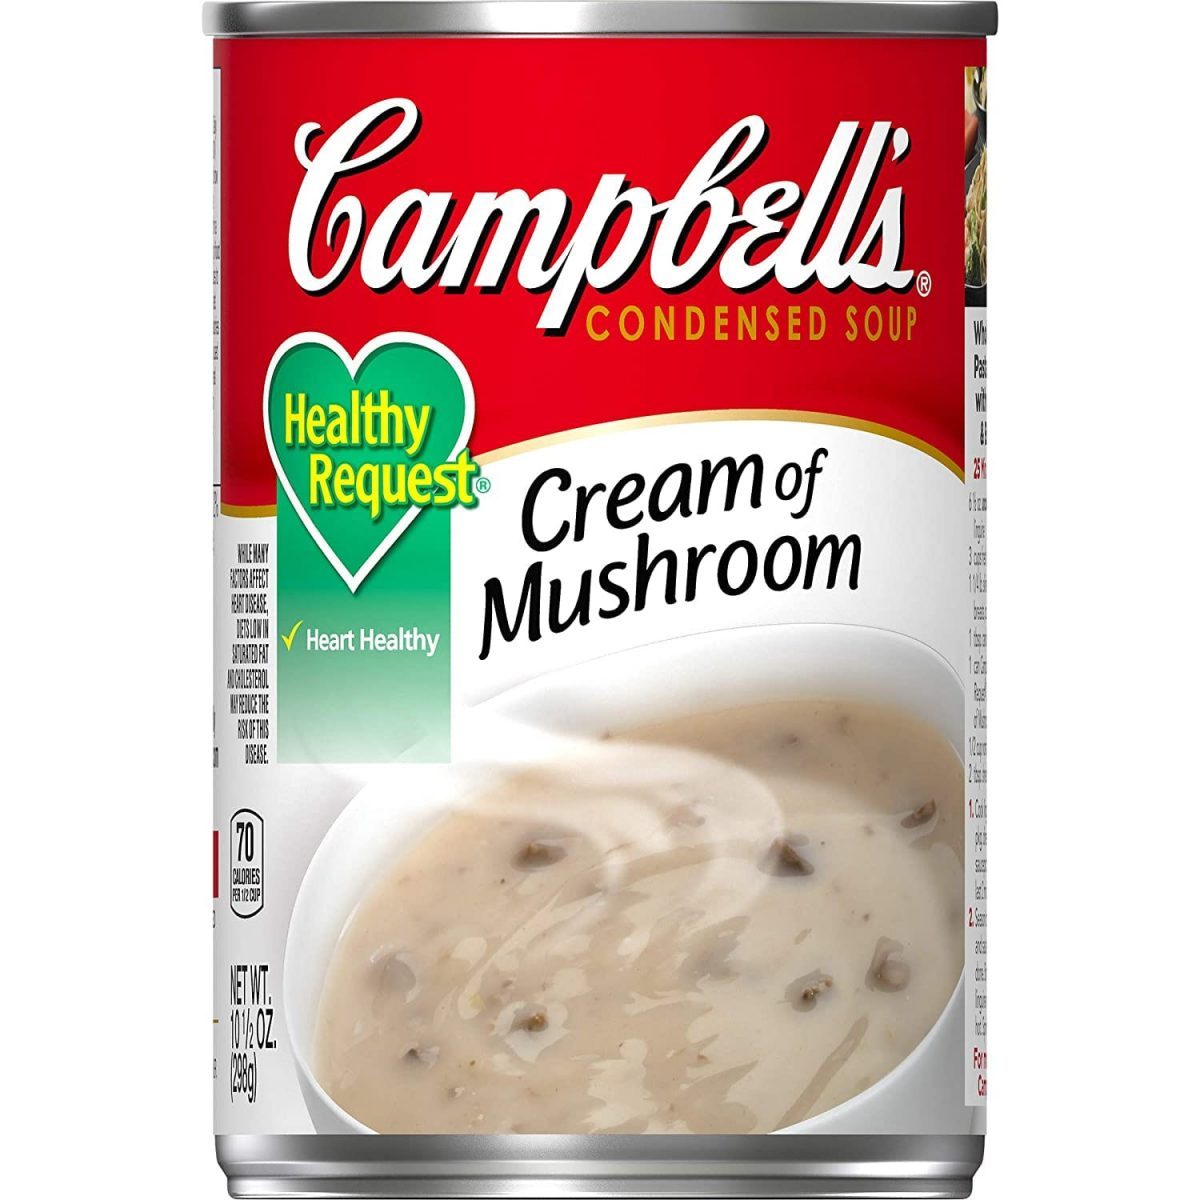 Campbell'sCondensedHealthy RequestCream of Mushroom Soup